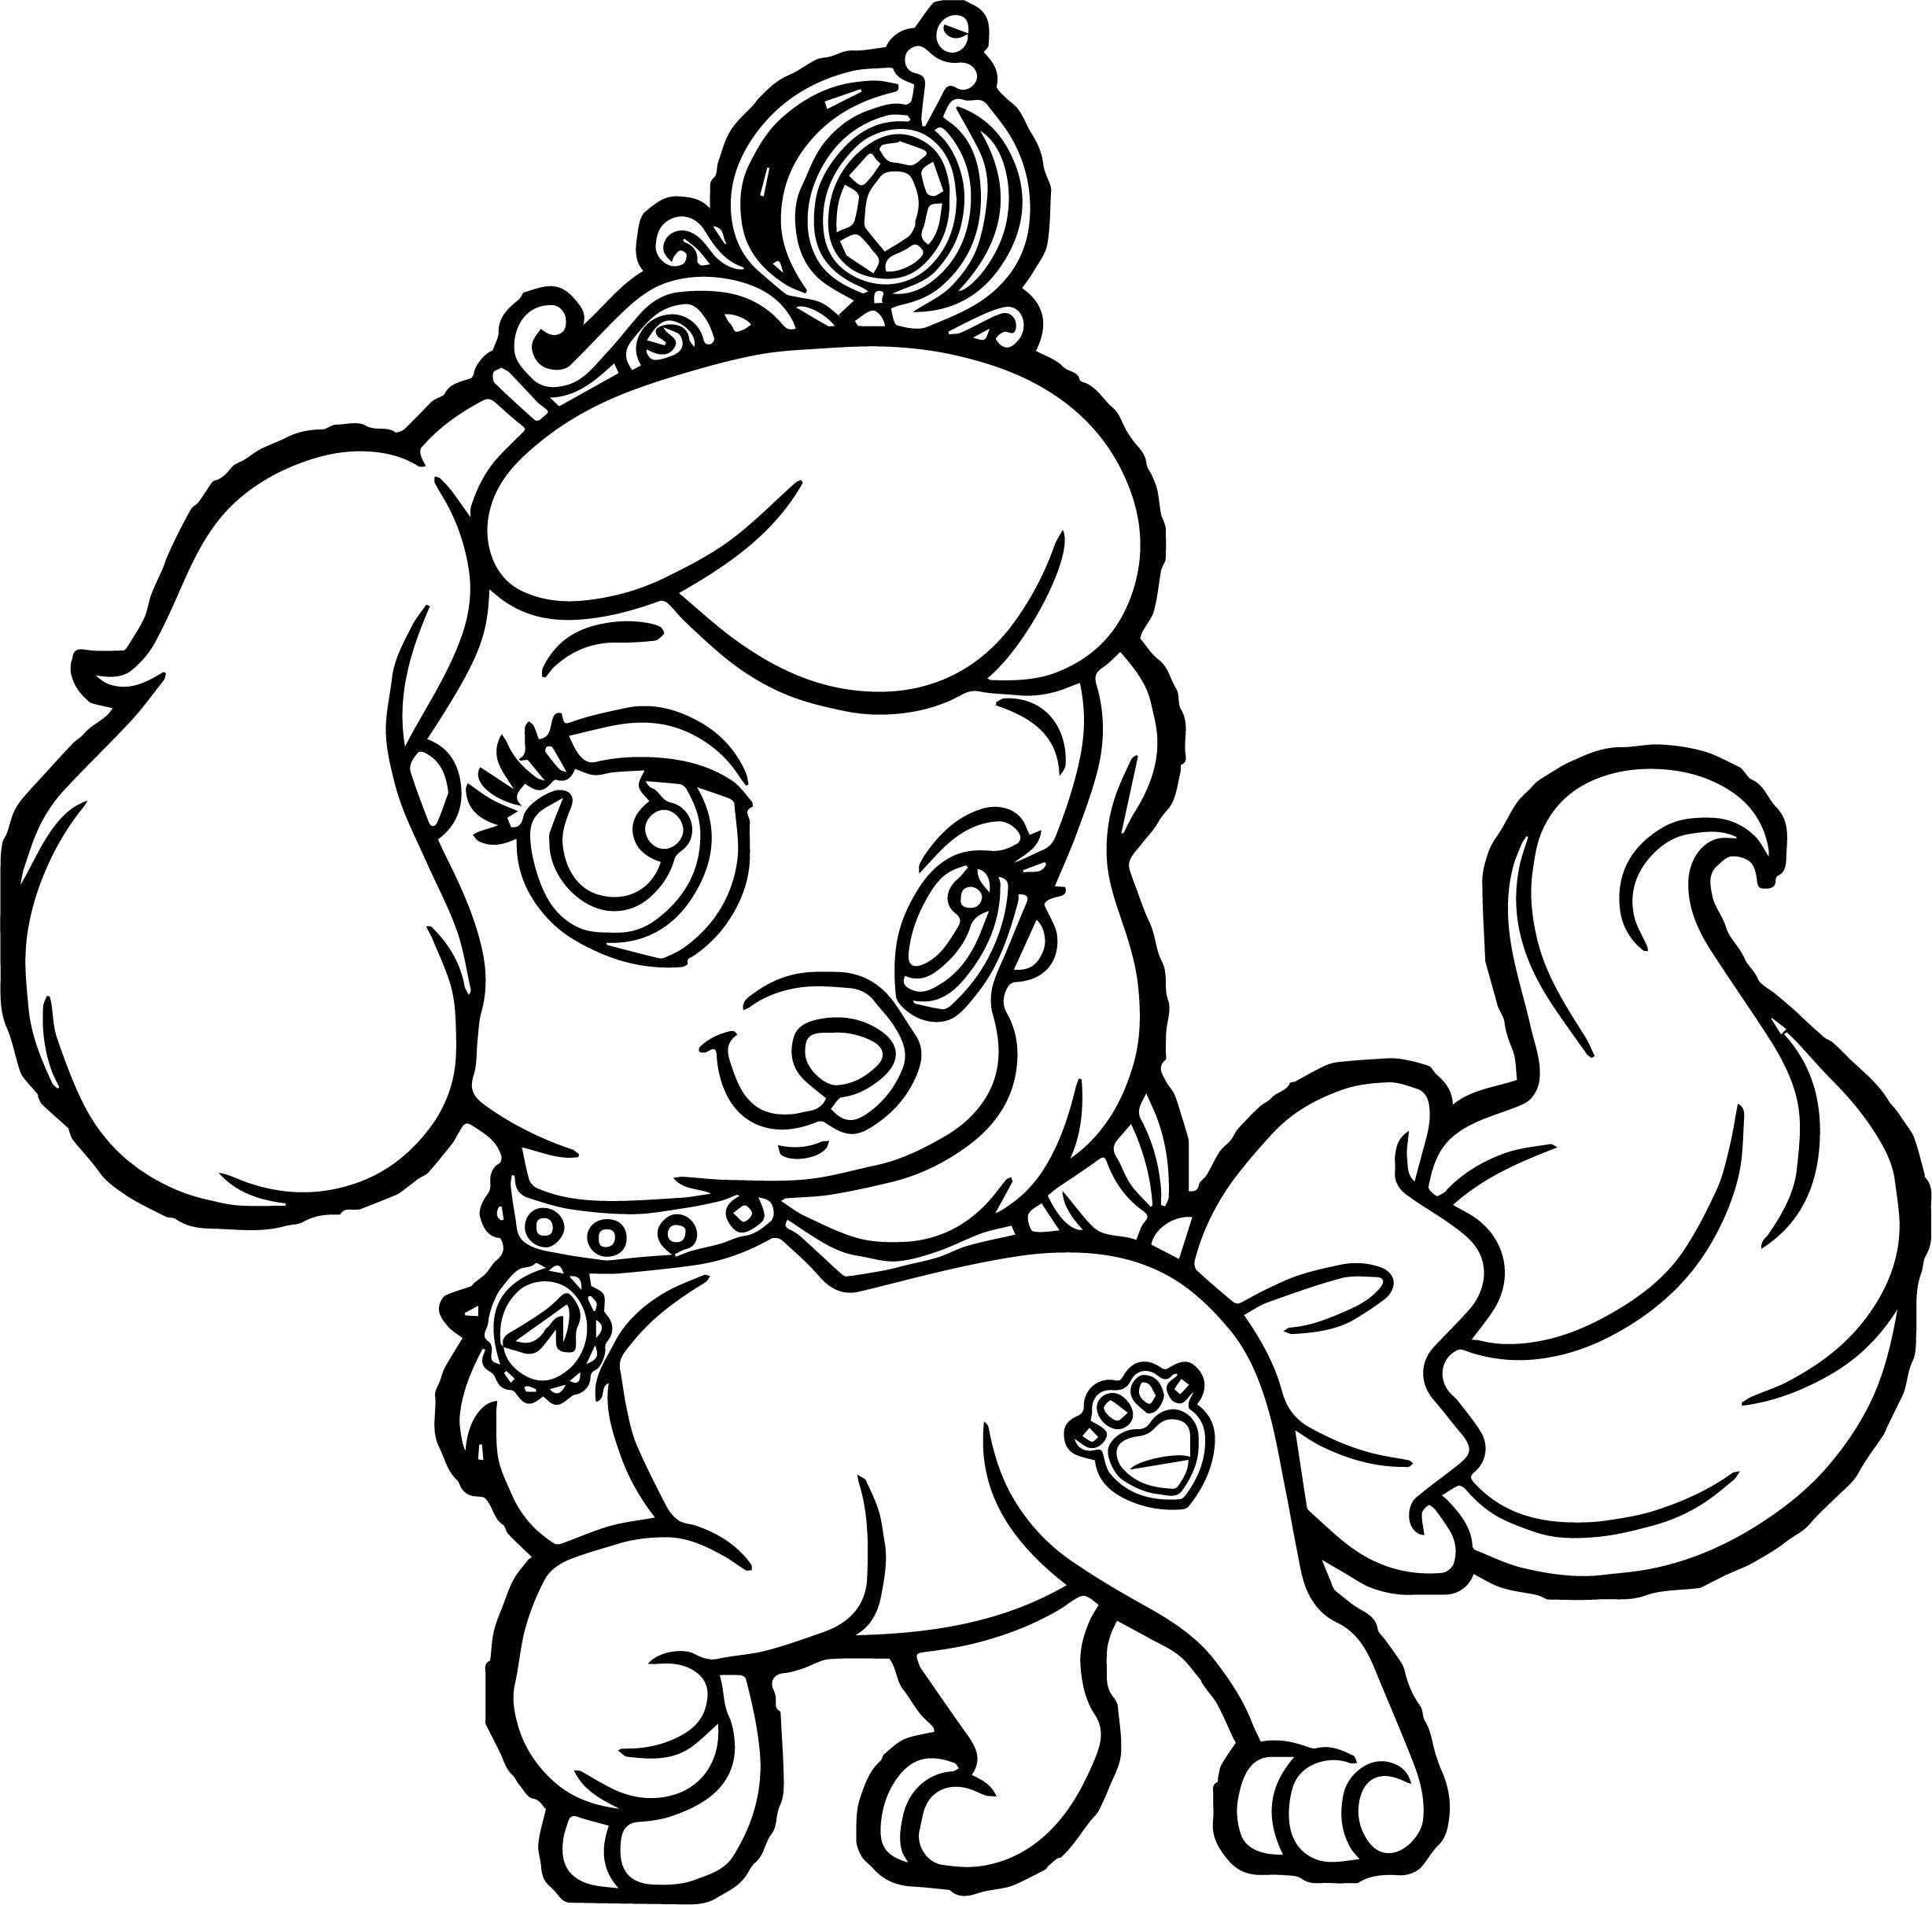 dog coloring picture cute dog coloring pages to download and print for free dog picture coloring